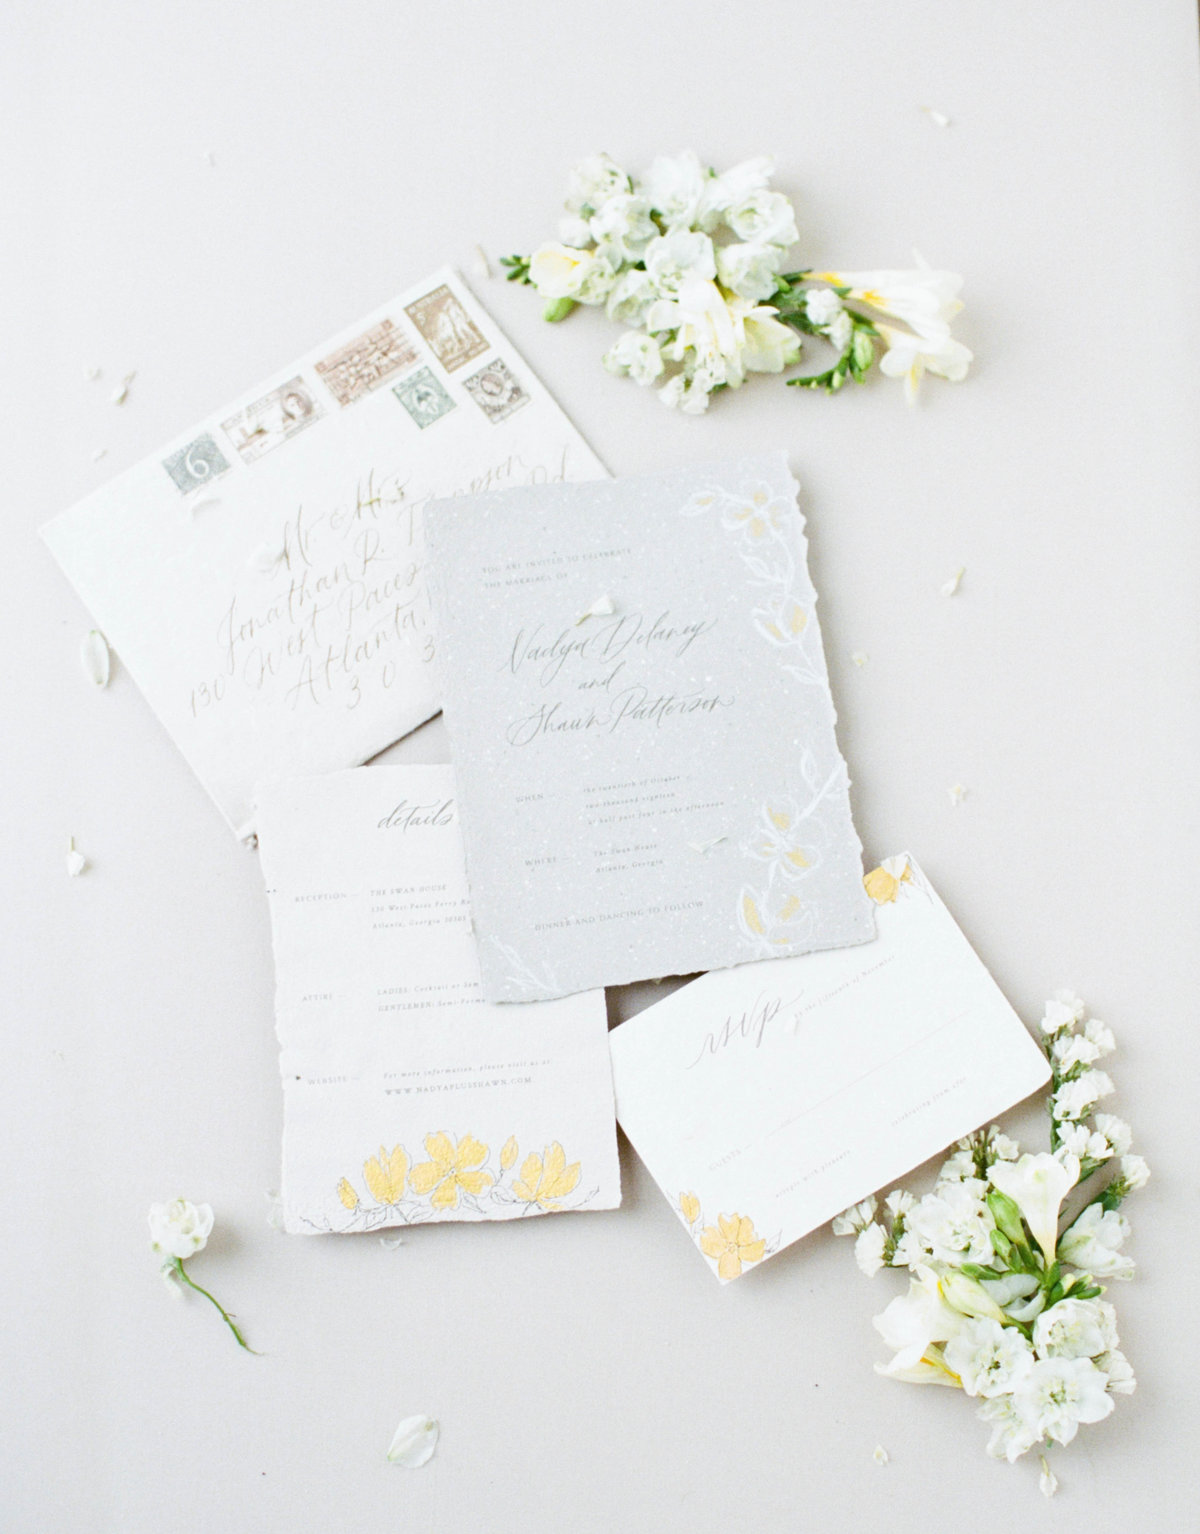 Fine art wedding invitations and paper goods with handmade details.